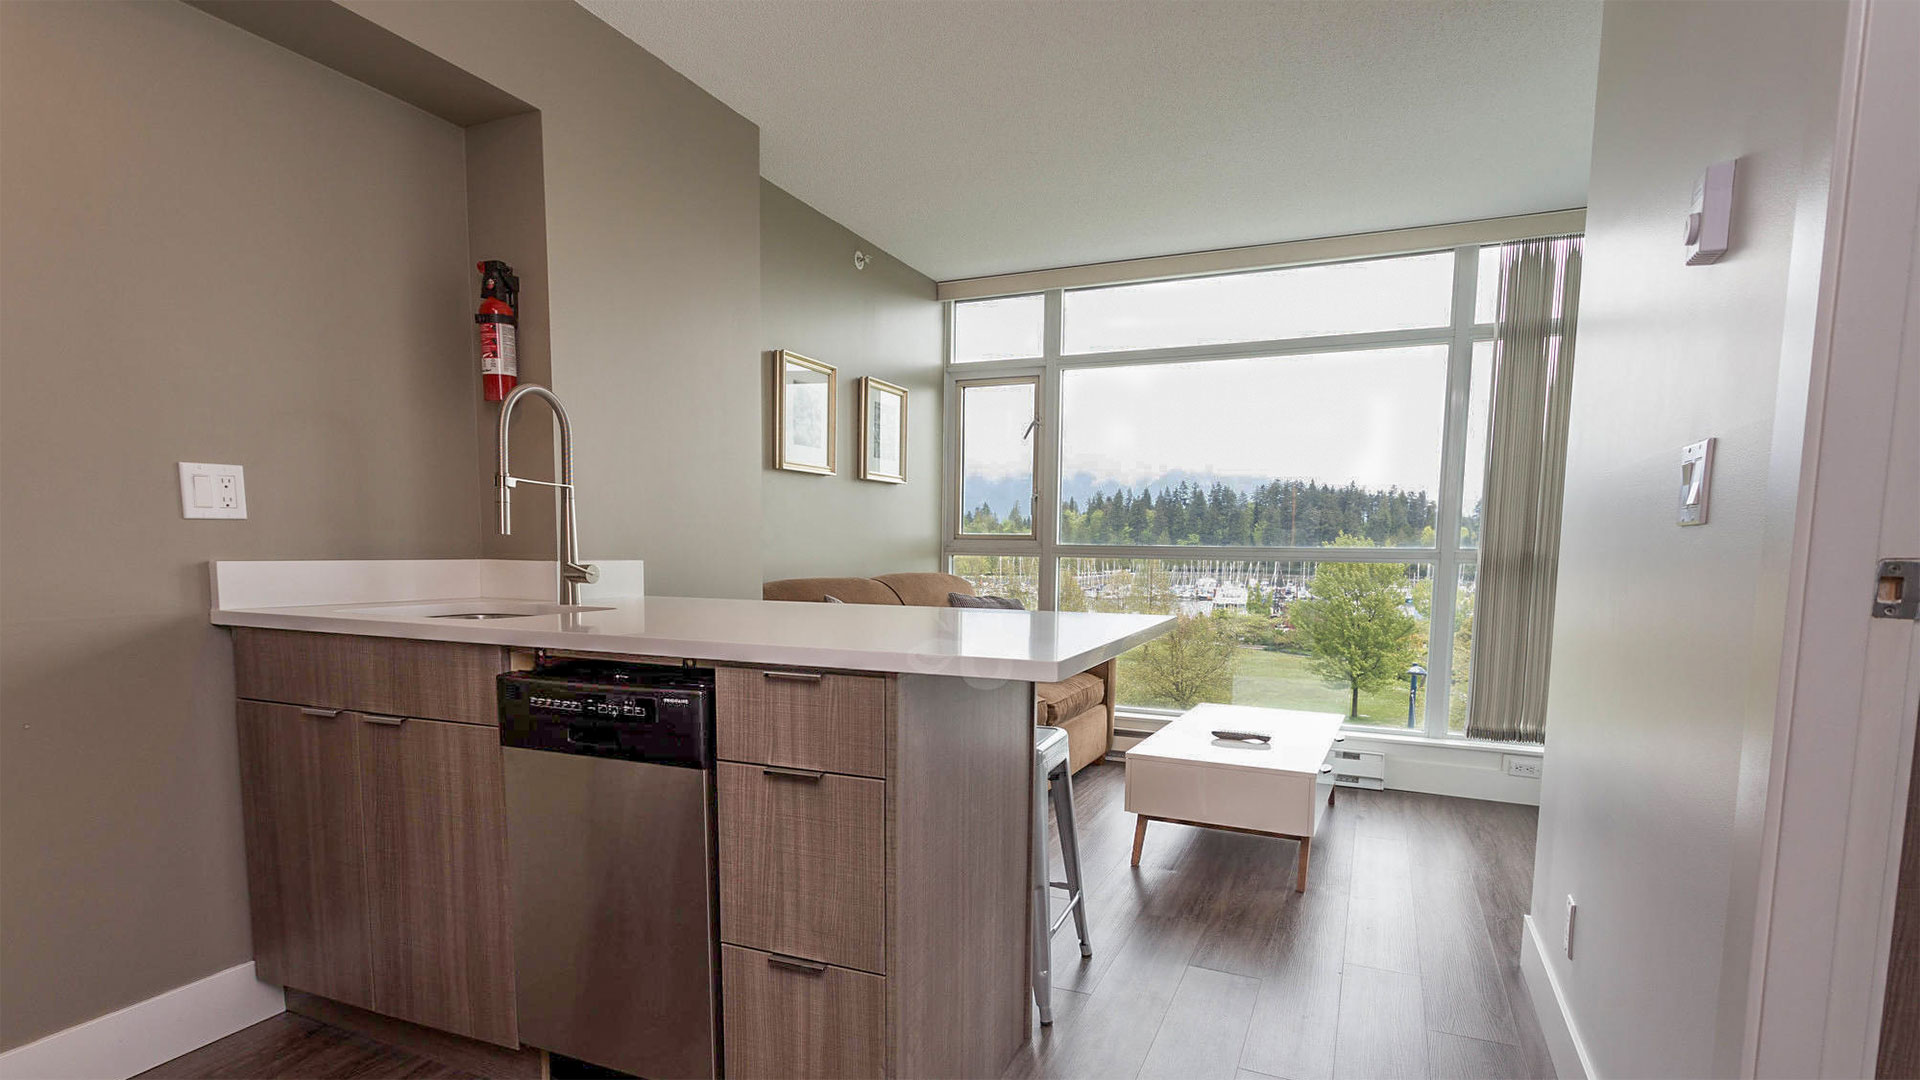 Lord Stanley Premium Plus Suite - Kitchen and Living Room